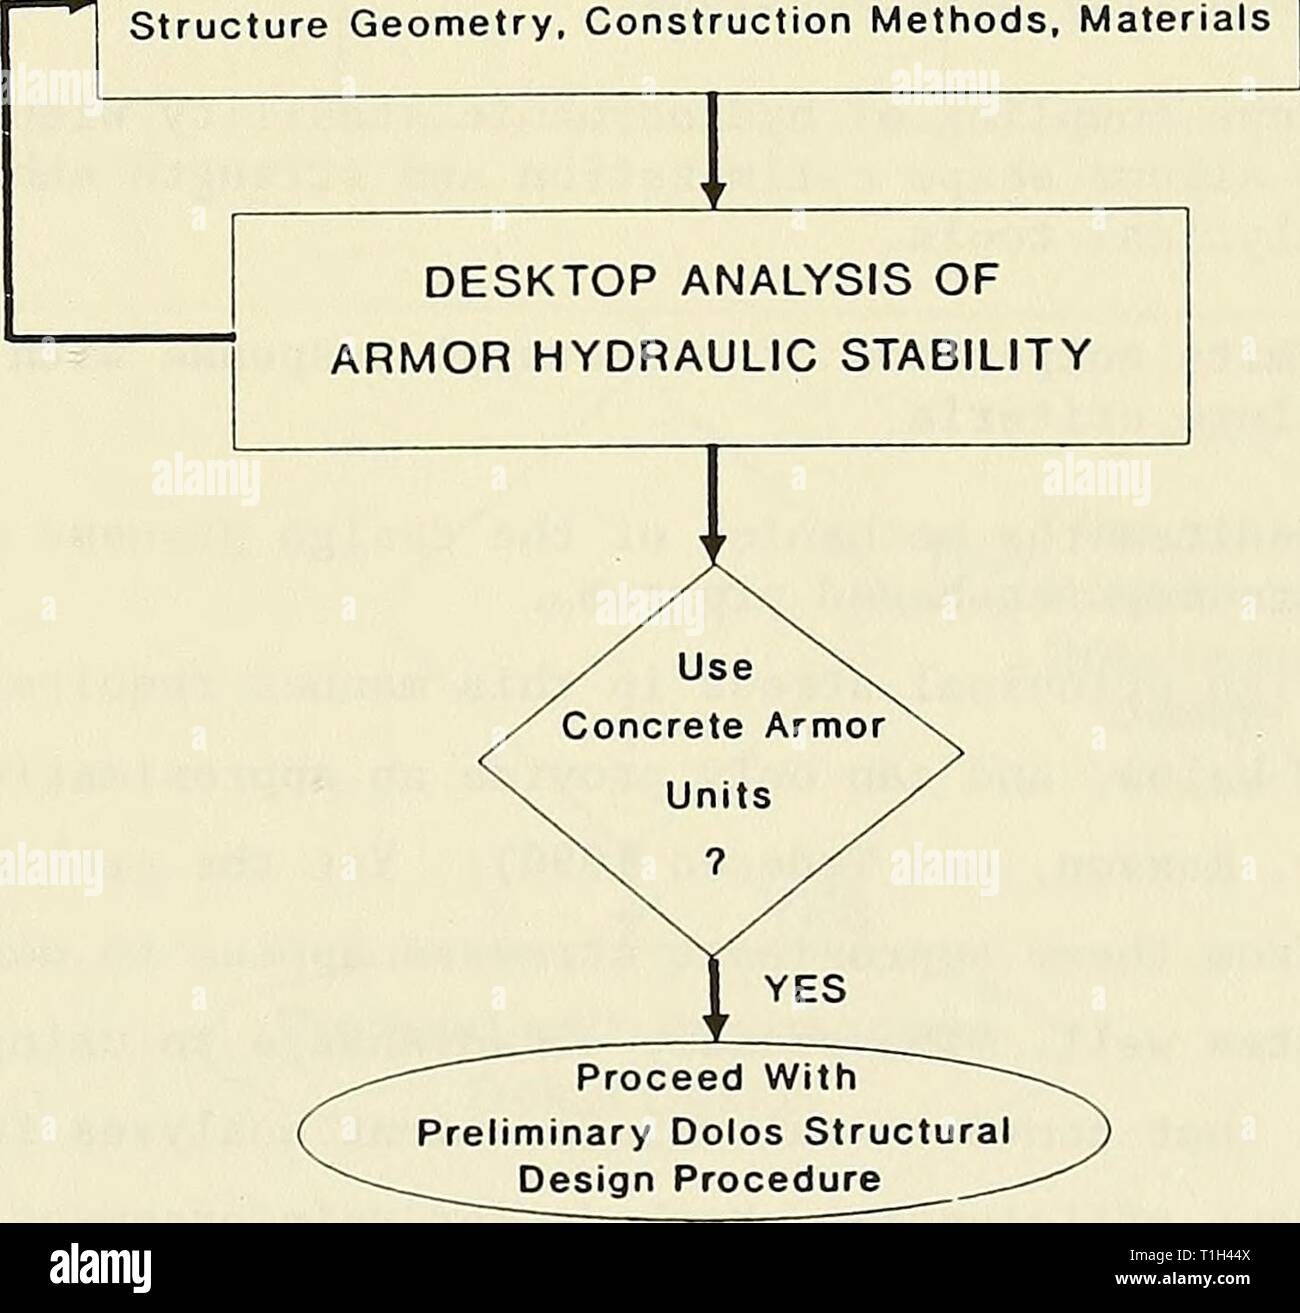 Dolos design procedure based on Dolos design procedure based on Crescent City prototype data  dolosdesignproce00melb Year: 1993  35. The Crescent City Dolos Structural Design Procedure is divided into three phases: (a) Preliminary Design, (b) Intermediate Design, and (c) Final Design. These modules, or design phases, are subsets of the break- water modular design procedure. The first phase, the preliminary or recon- naissance design phase, is a desktop study that utilizes the program CAUDAID to determine a dolos design configuration. The second phase utilizes the physical model, if necessary,  Stock Photo